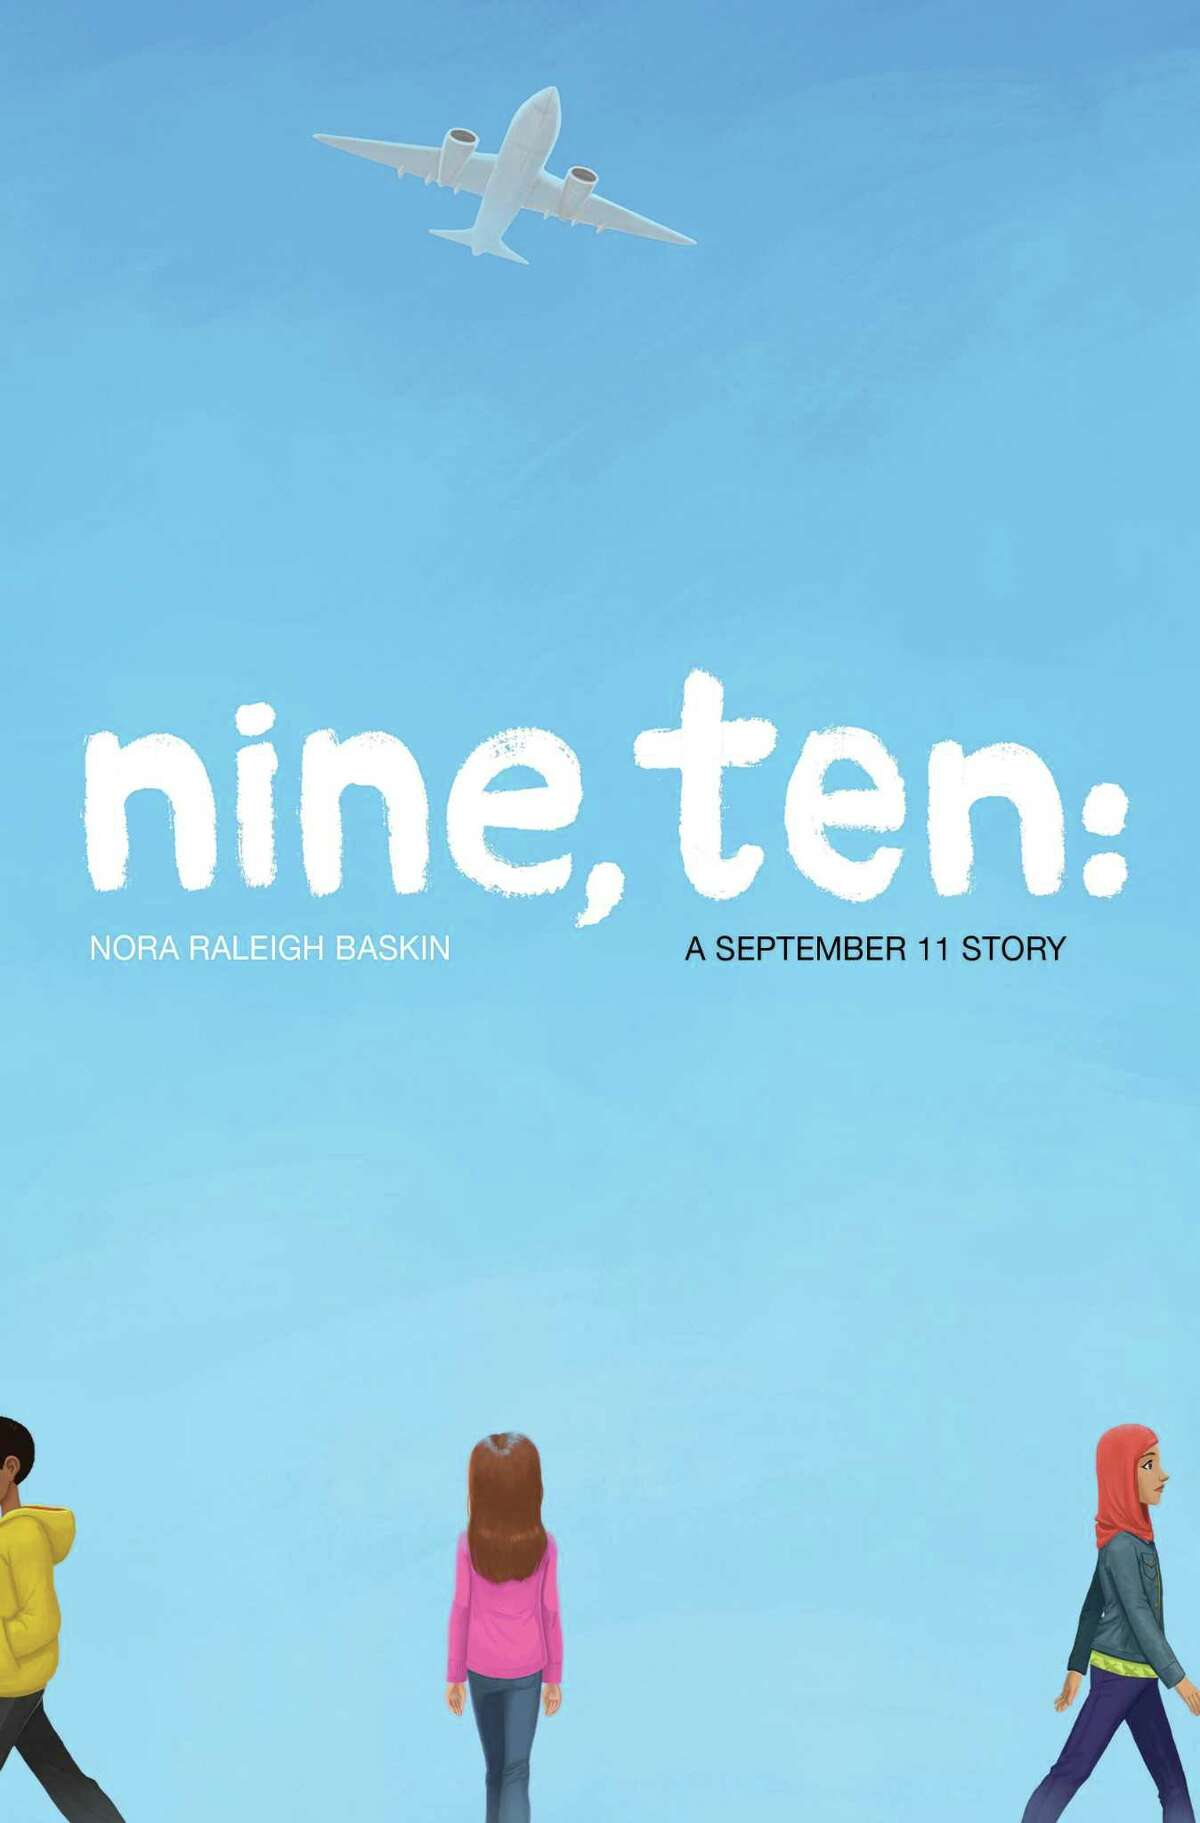 """Nora Baskin of Weston will speak Sept. 10, 2021 at the Westport Library about her middle grade novel """"Nine, Ten: A September 11 Story."""" She also has some guidance on how parents can talk to children about that event."""